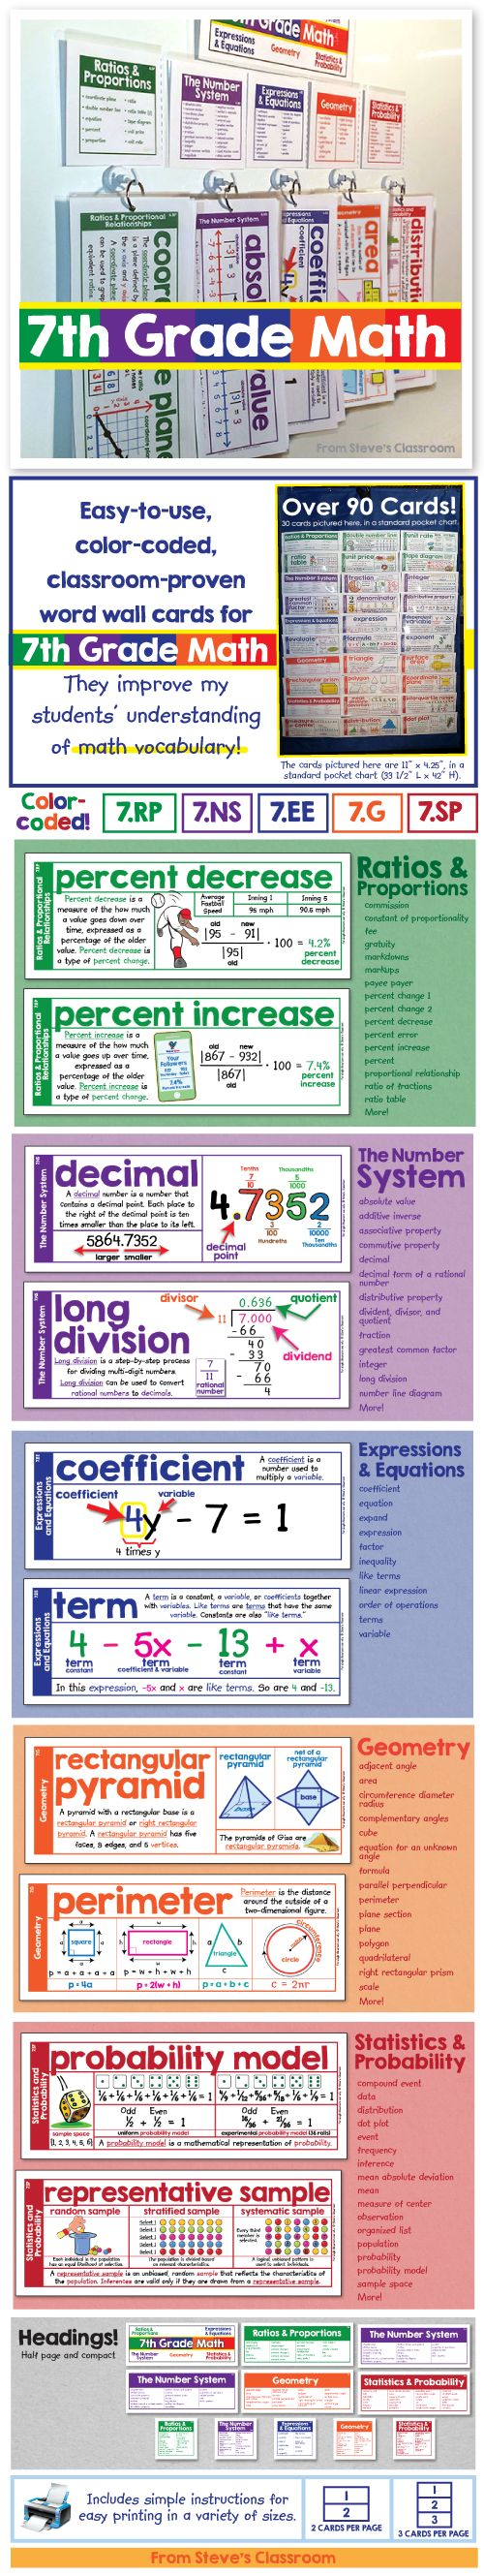 Bring 7th grade math vocabulary to life with these easy-to-use word wall cards. The illustrations help students understand seventh grade math concepts like ratios and proportions, the number system, expressions and equations, geometry, and statistics. The color coding makes it easy to stay organized and identify the different domains, even from a distance.